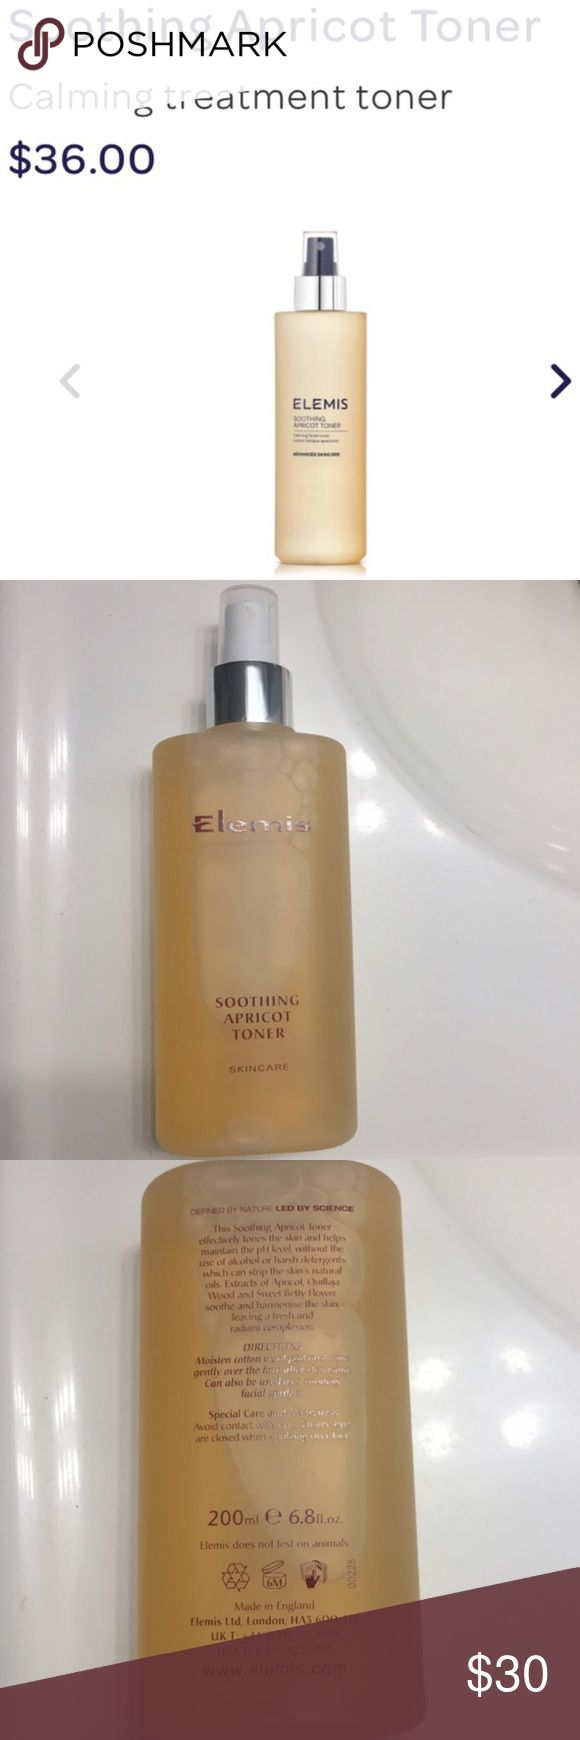 New Facial Toner Never used. Elemis Smoothing Apricot Toner. 200ml (6.8fl oz). Retail $36.  no trades | offer button only please Makeup